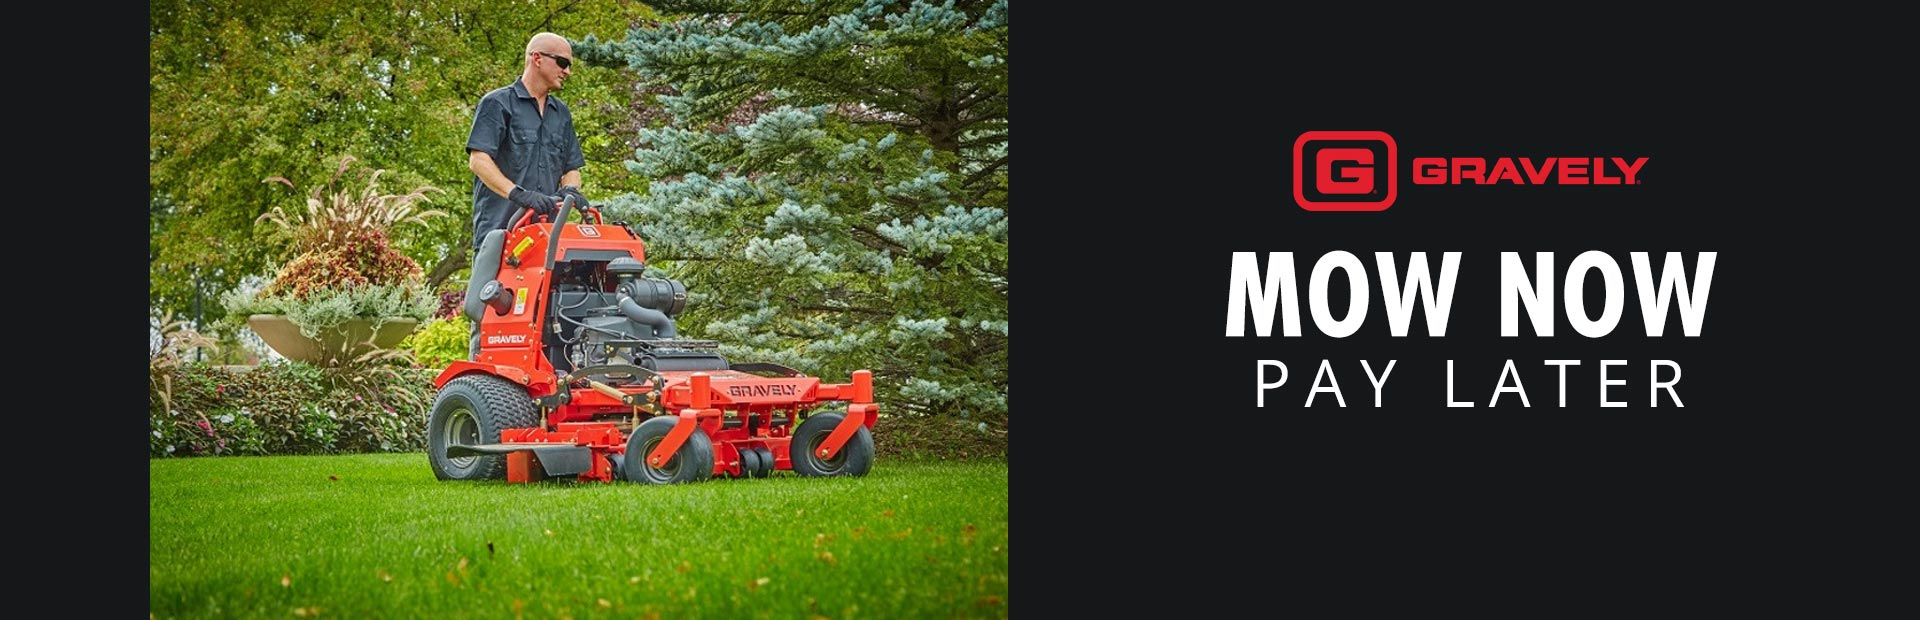 Gravely: Sheffield - Mow Now Pay Later